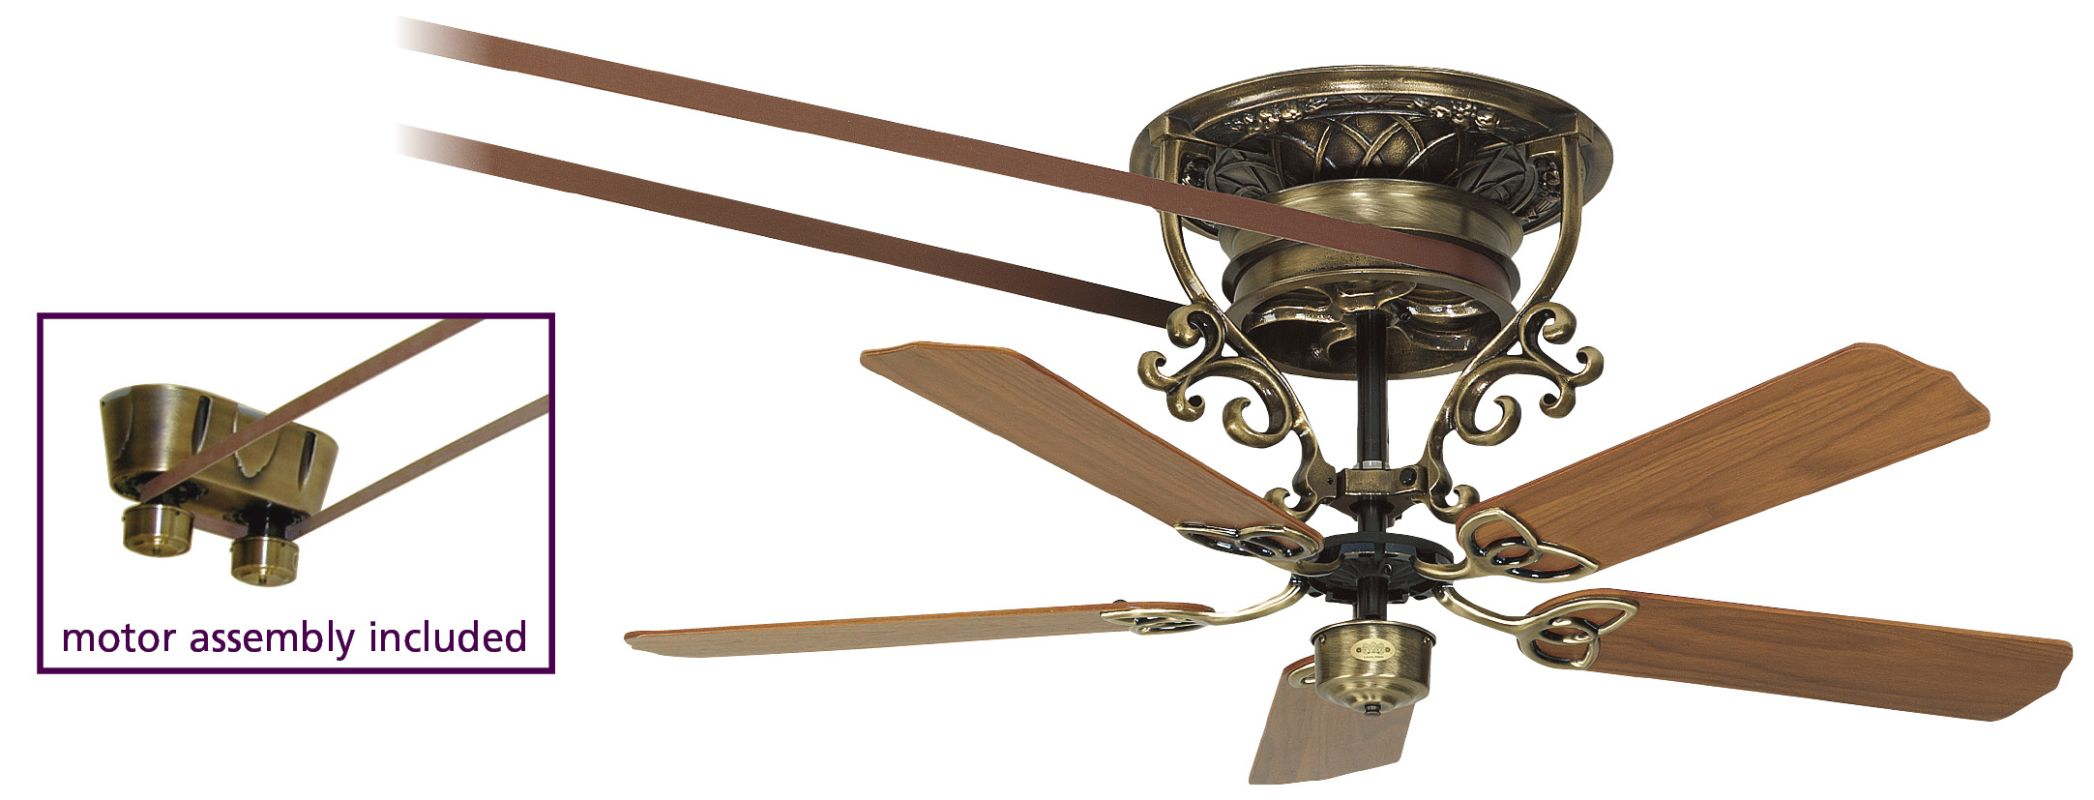 "Fanimation FP580-18-S1 52"" Belt Drive 5 Blade Ceiling Fan - Blades"